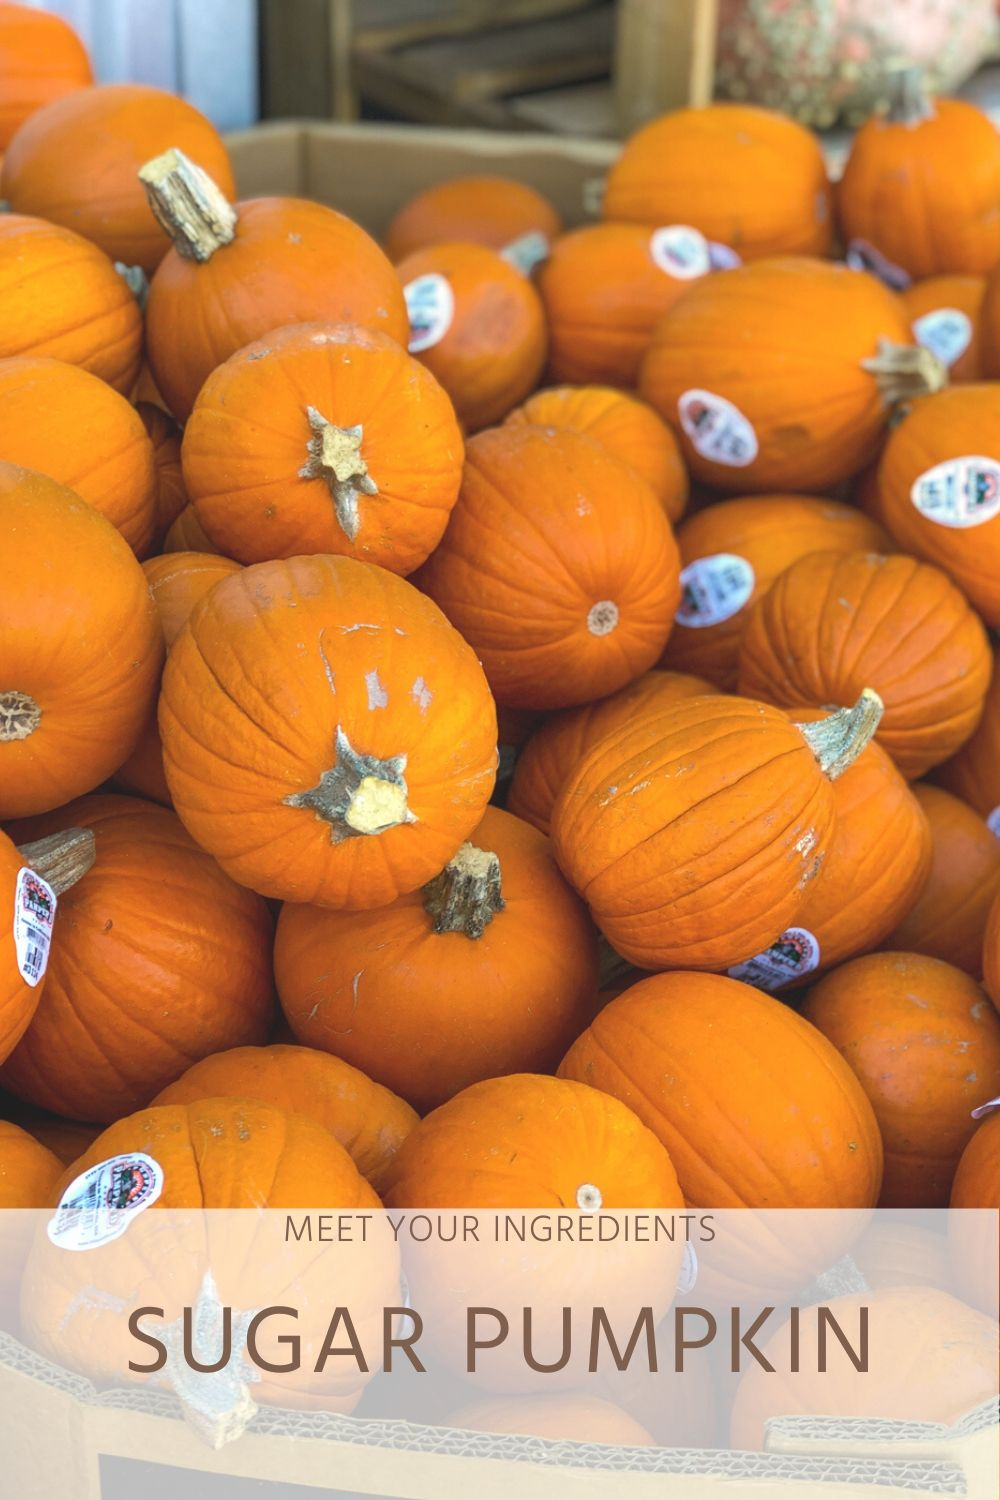 Dietitian Guide to Sugar Pumpkins